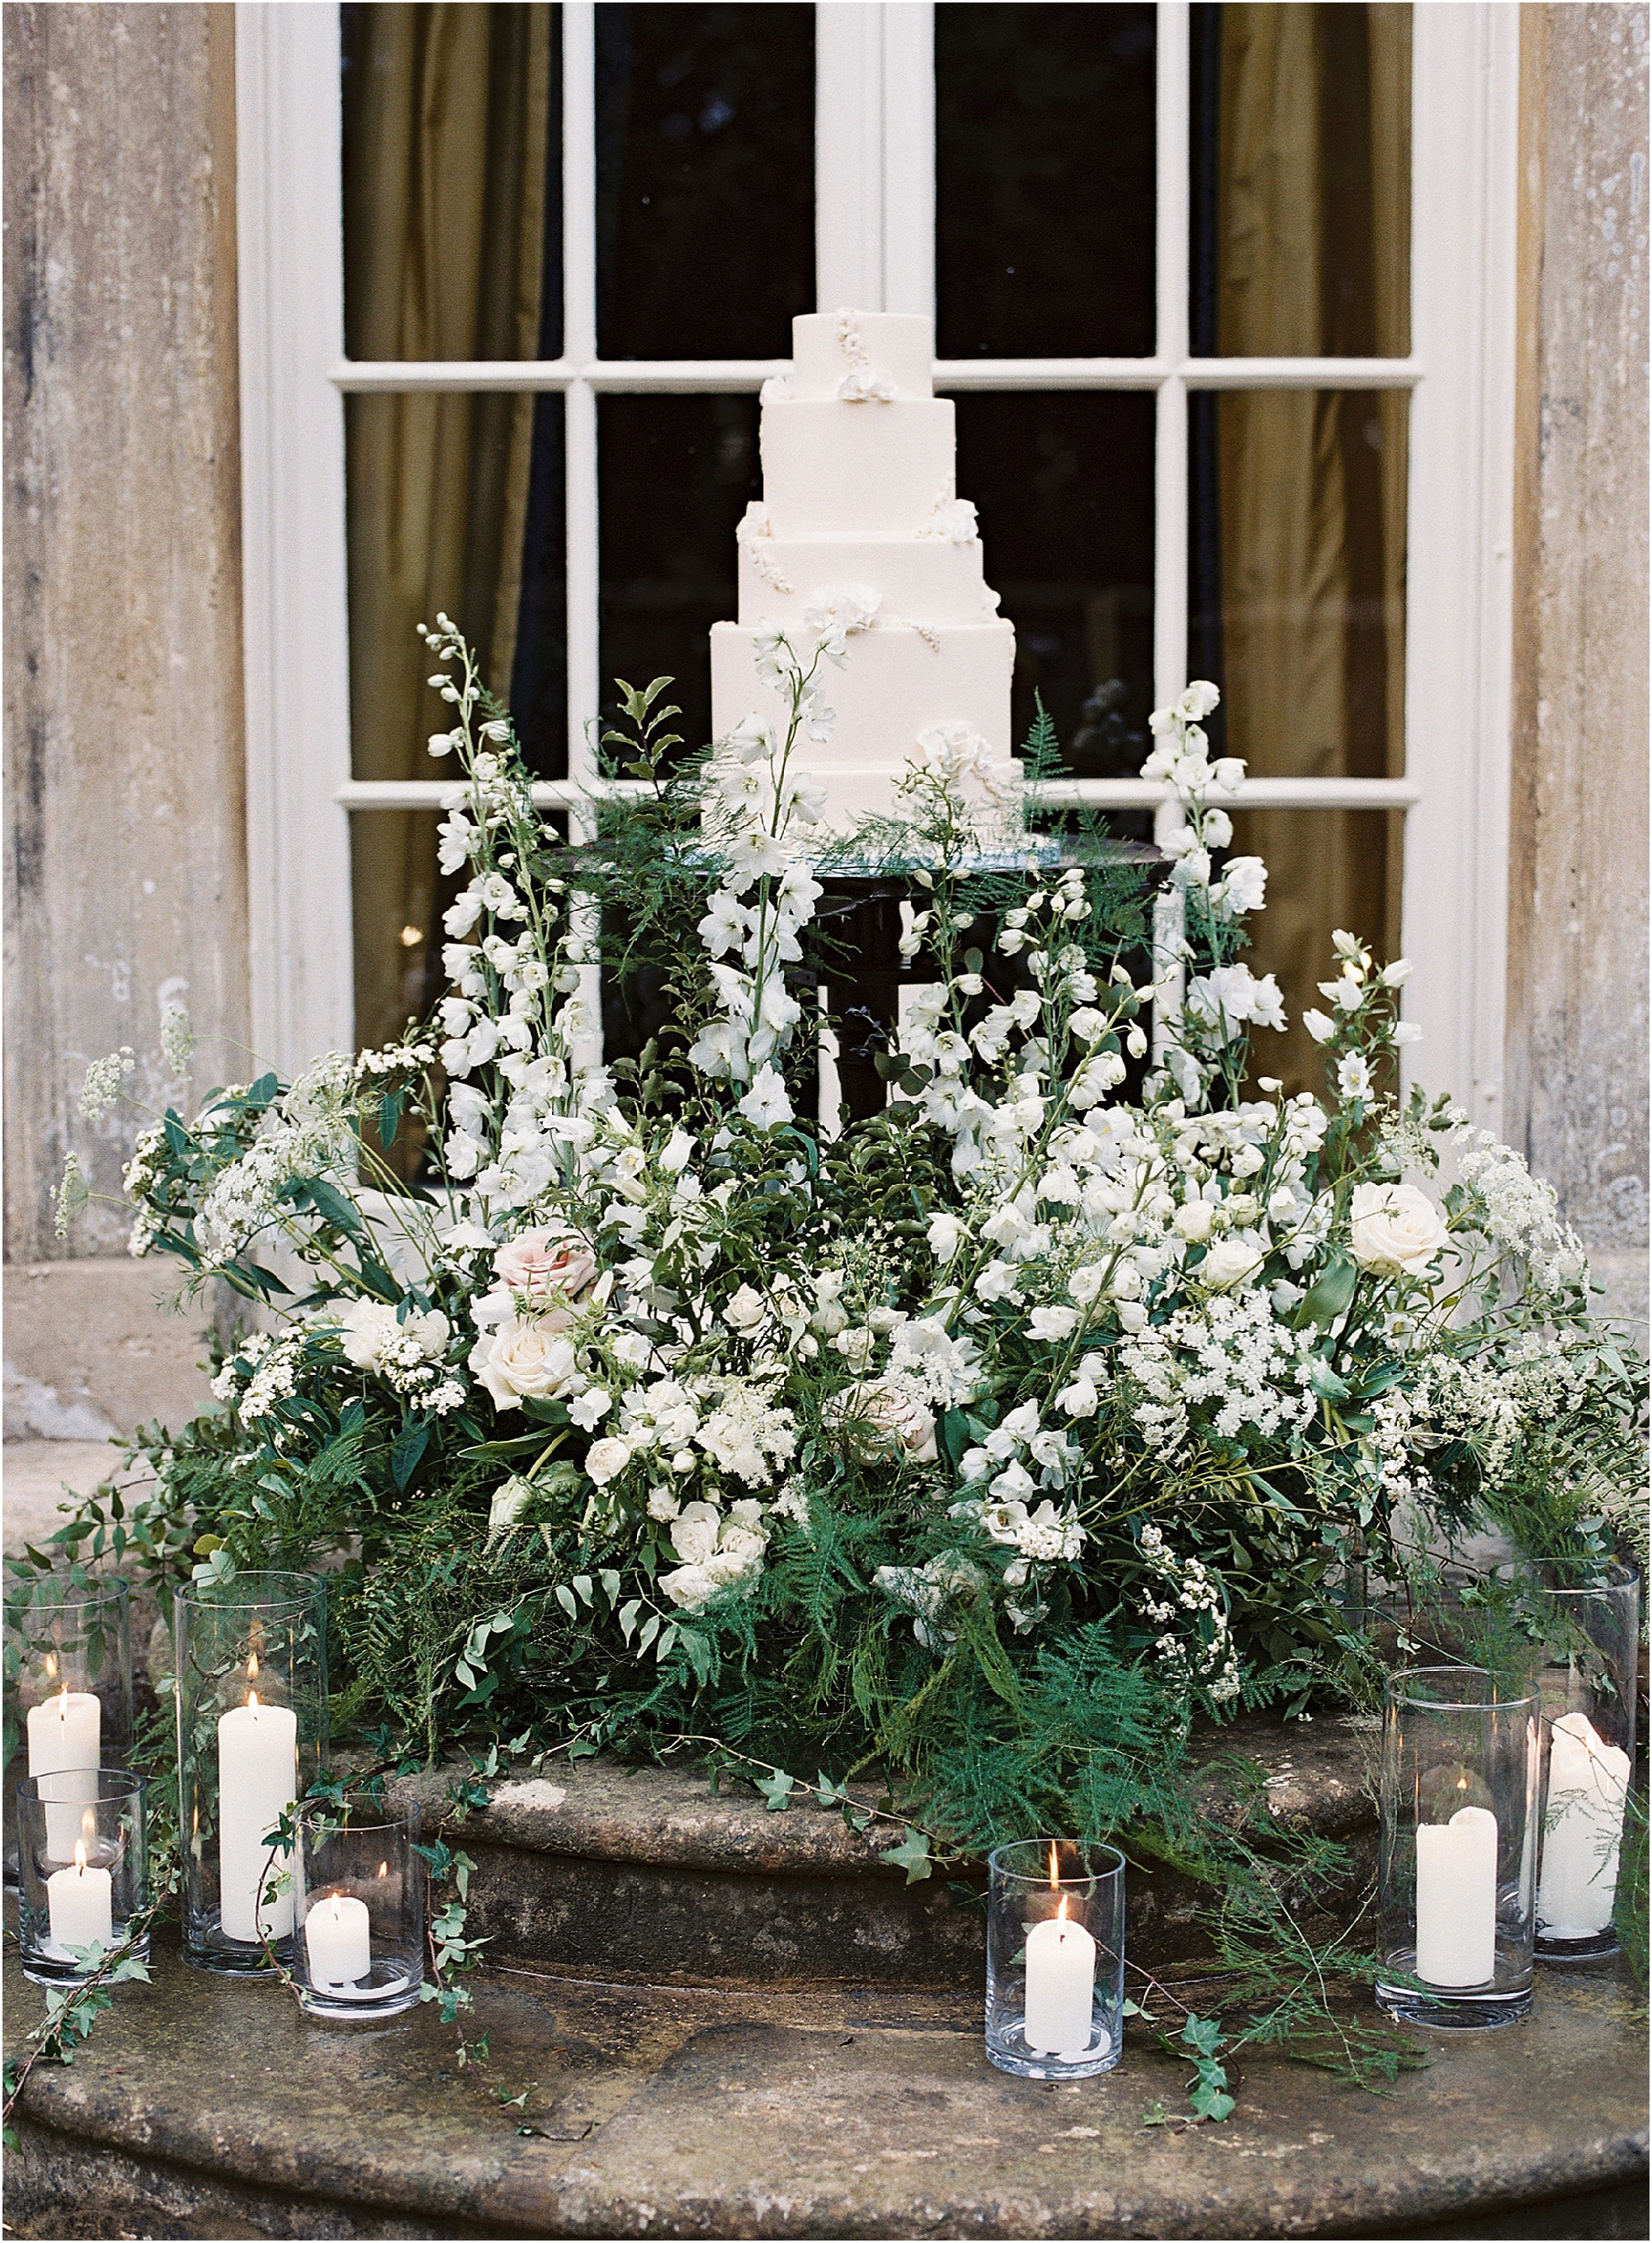 Cream five tier wedding cake amongst floral display on the steps of Thorpe Manor